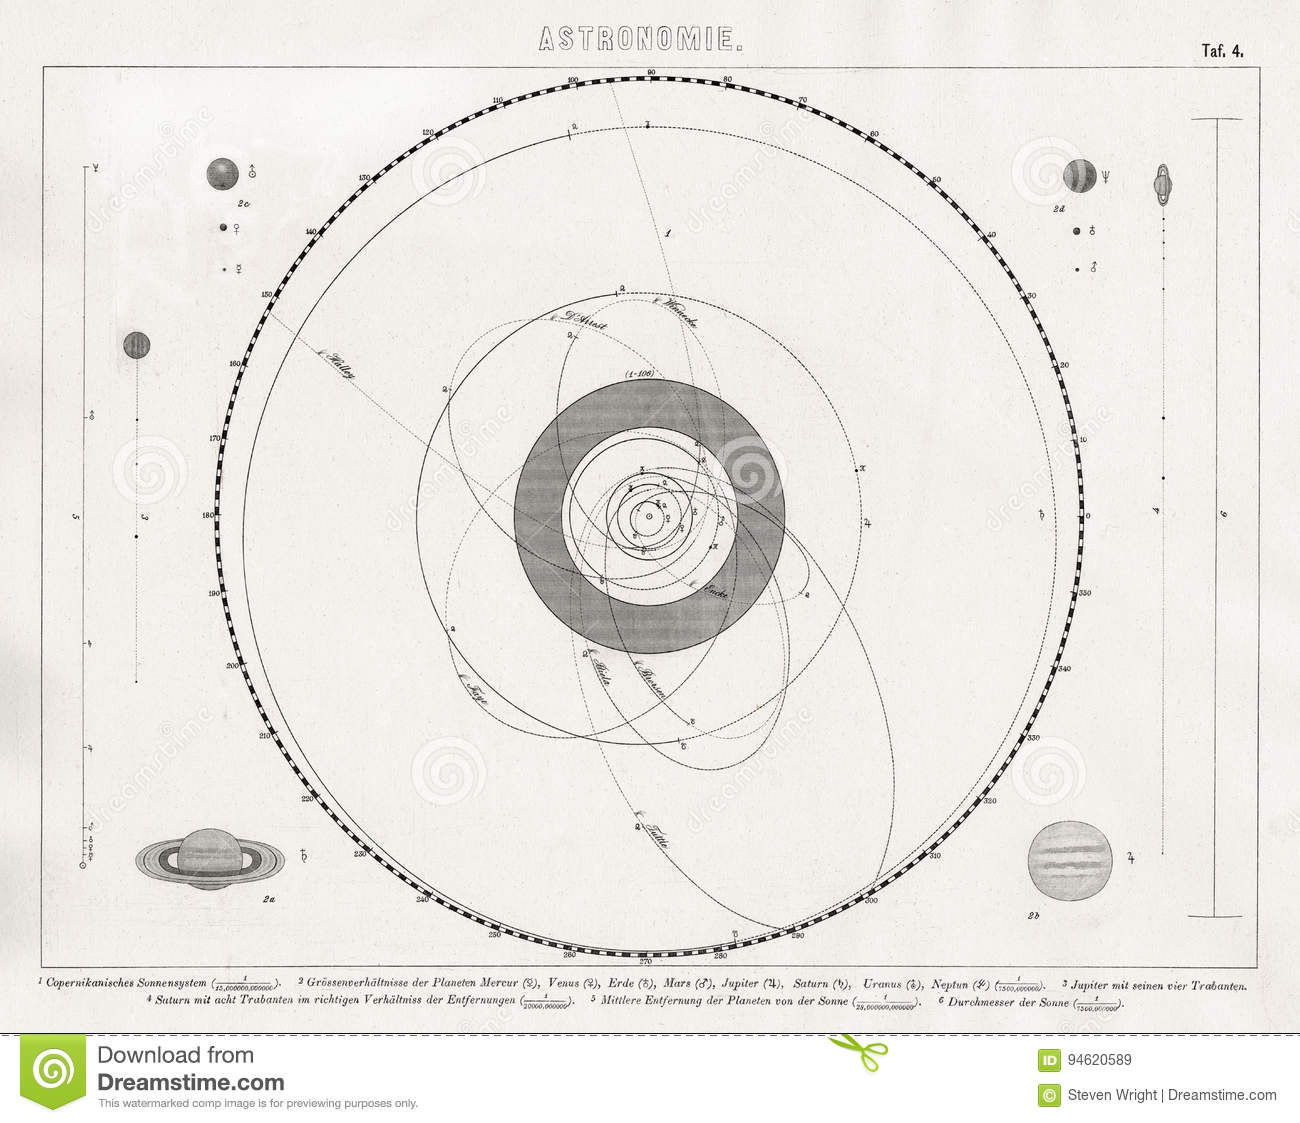 Bilder map of solar system with planet and comet orbits stock image download bilder map of solar system with planet and comet orbits stock image image of ccuart Image collections